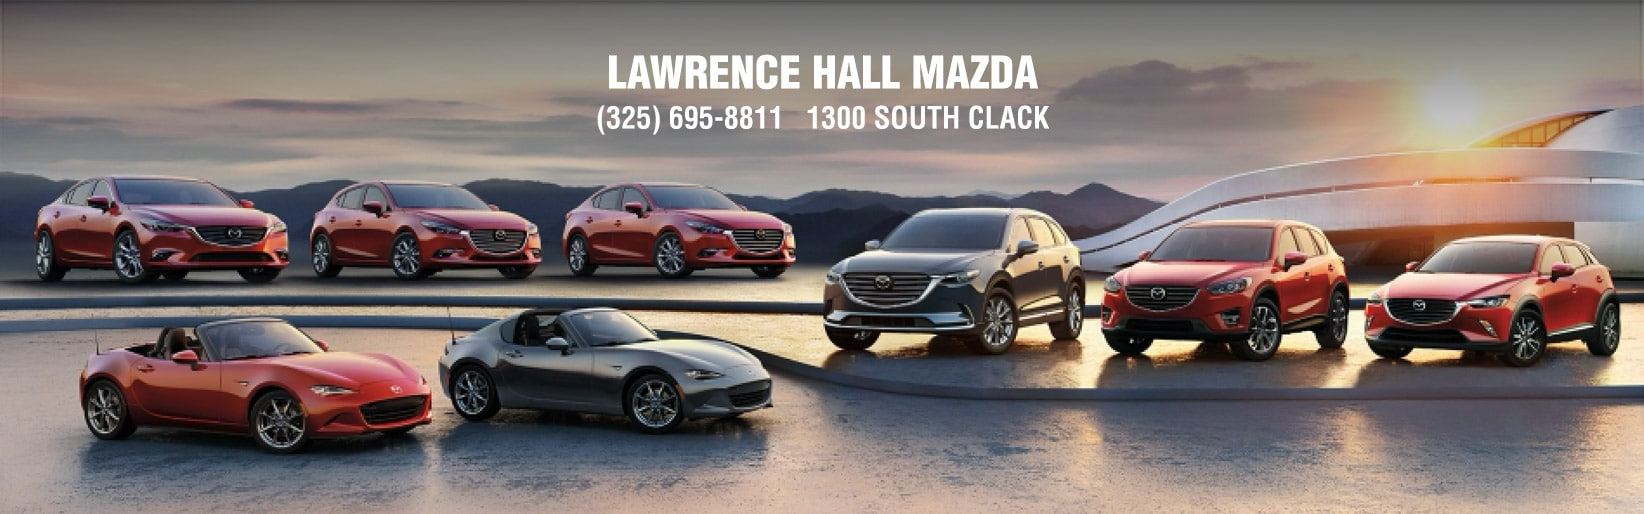 mazda about driveaway nearest rockdale great offering us mx dealer your local is